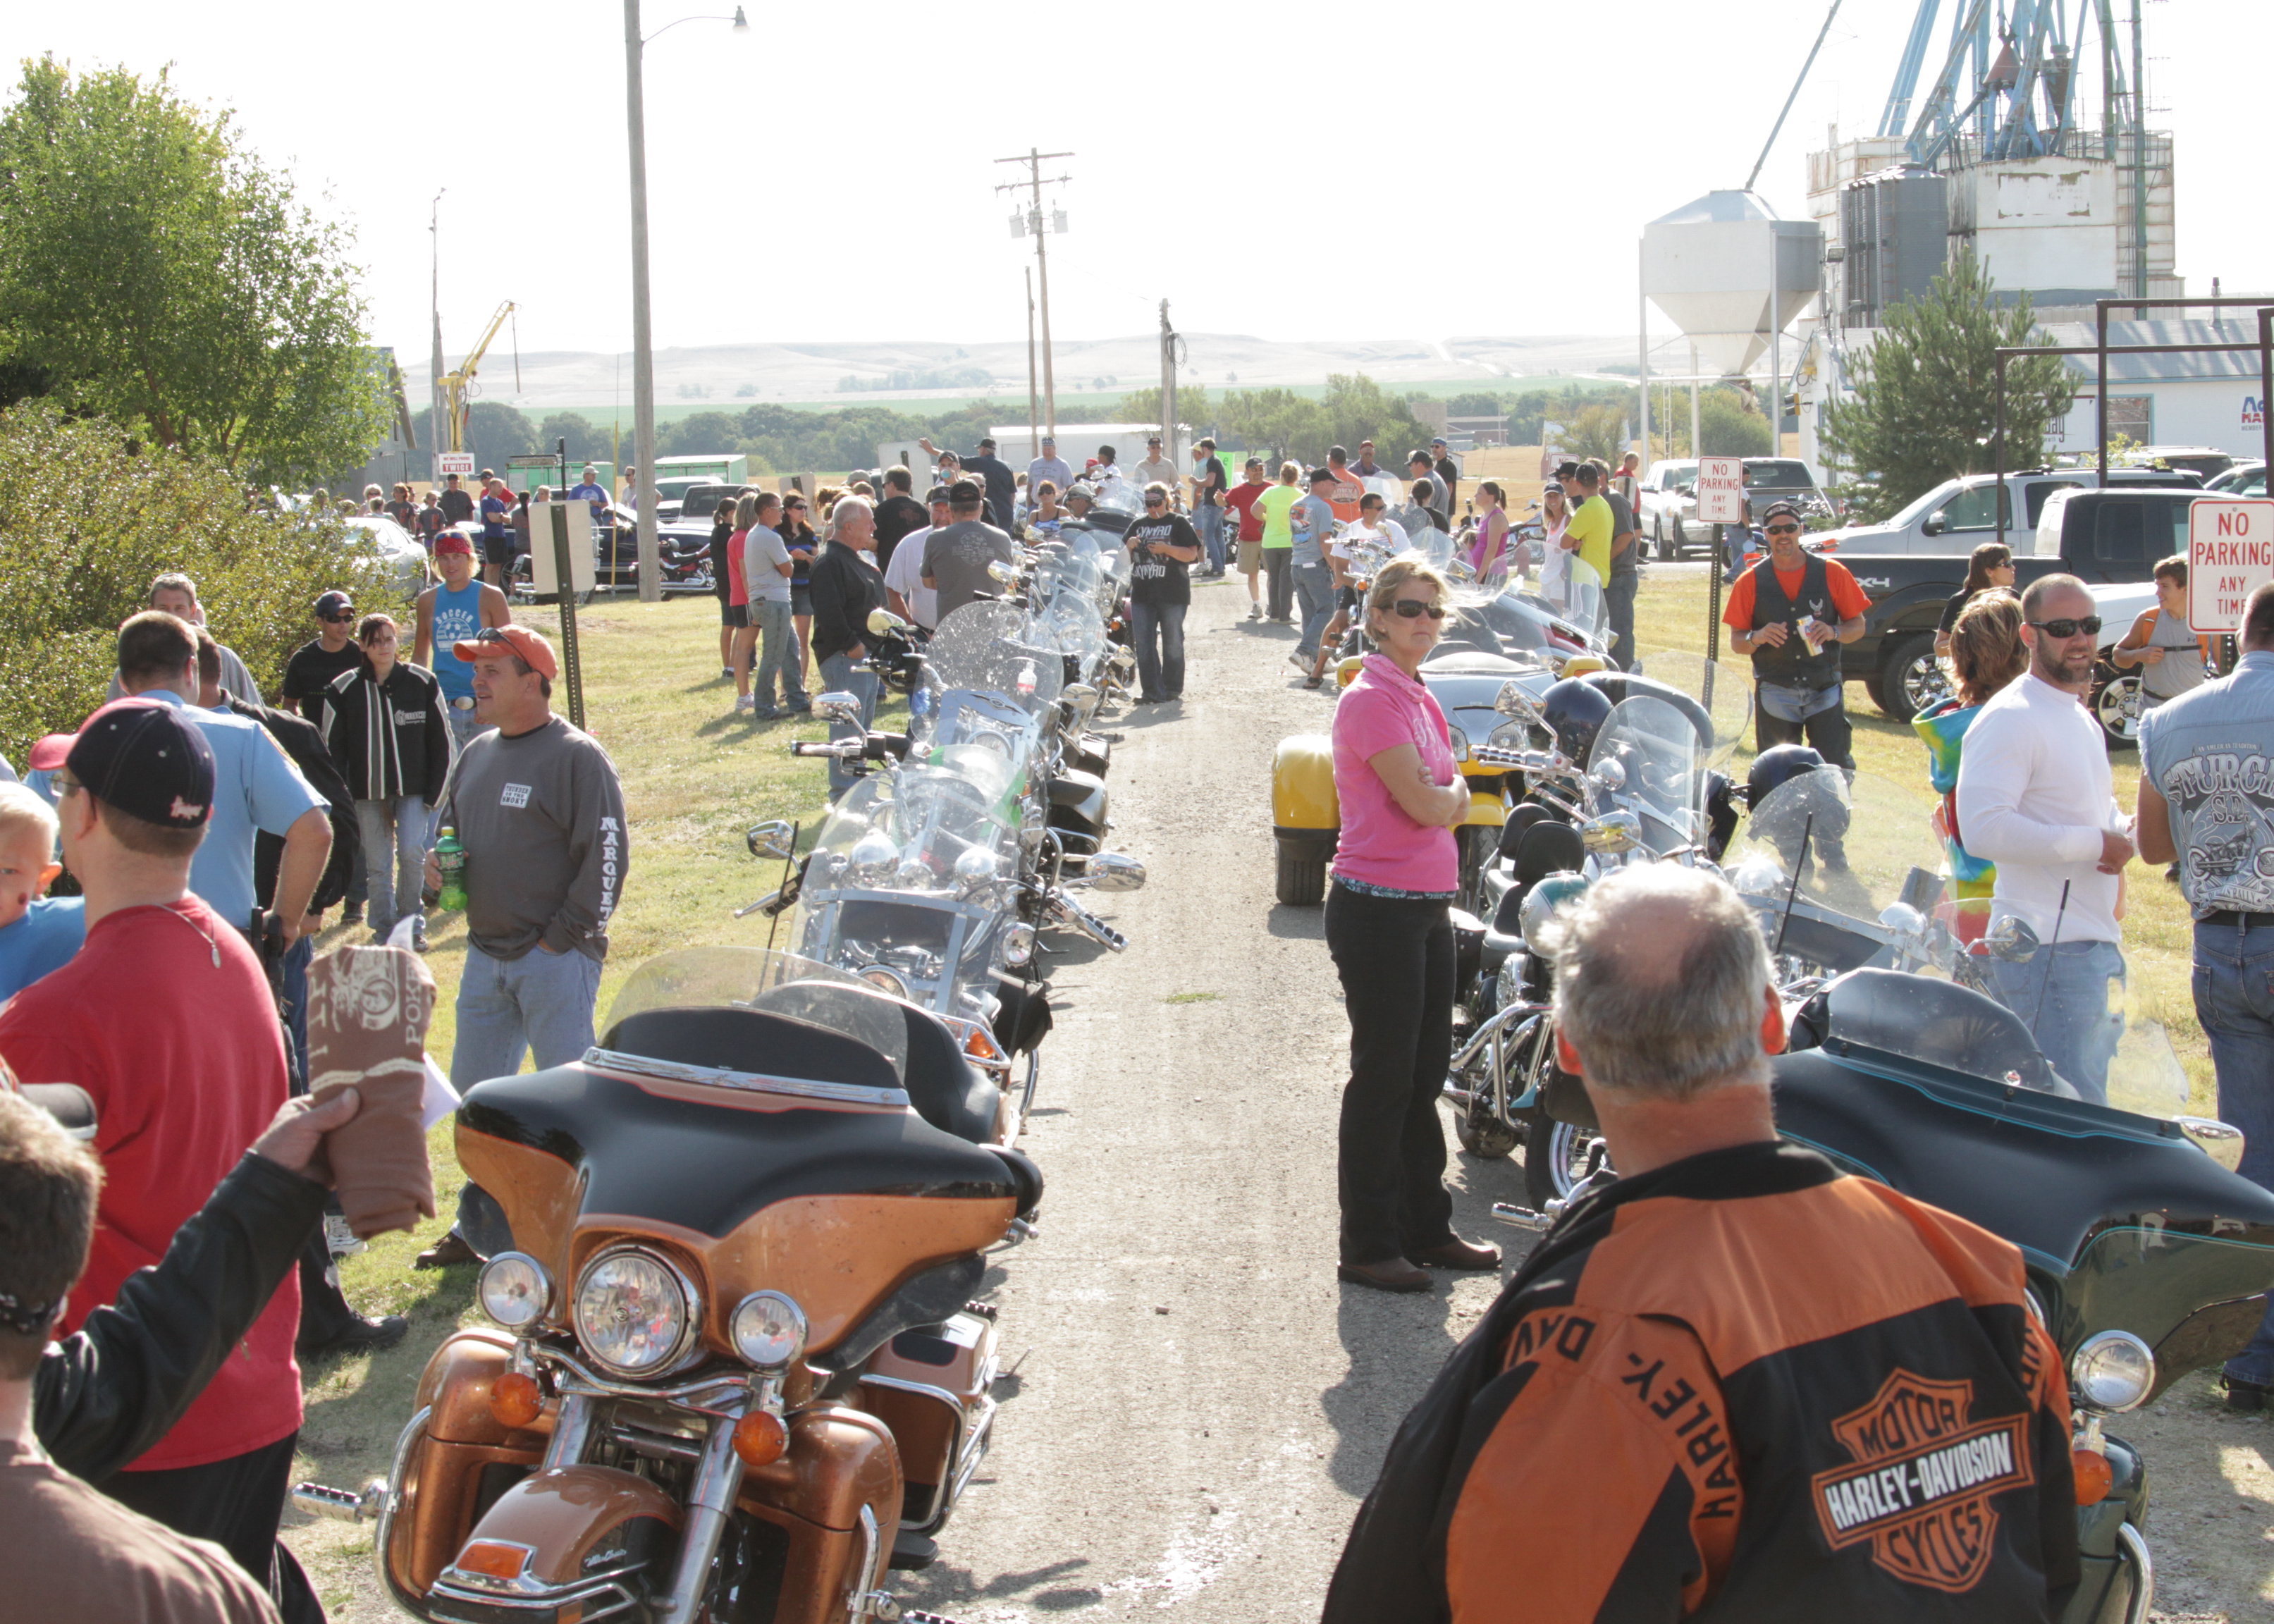 TiptonBikeRally_2012_2012